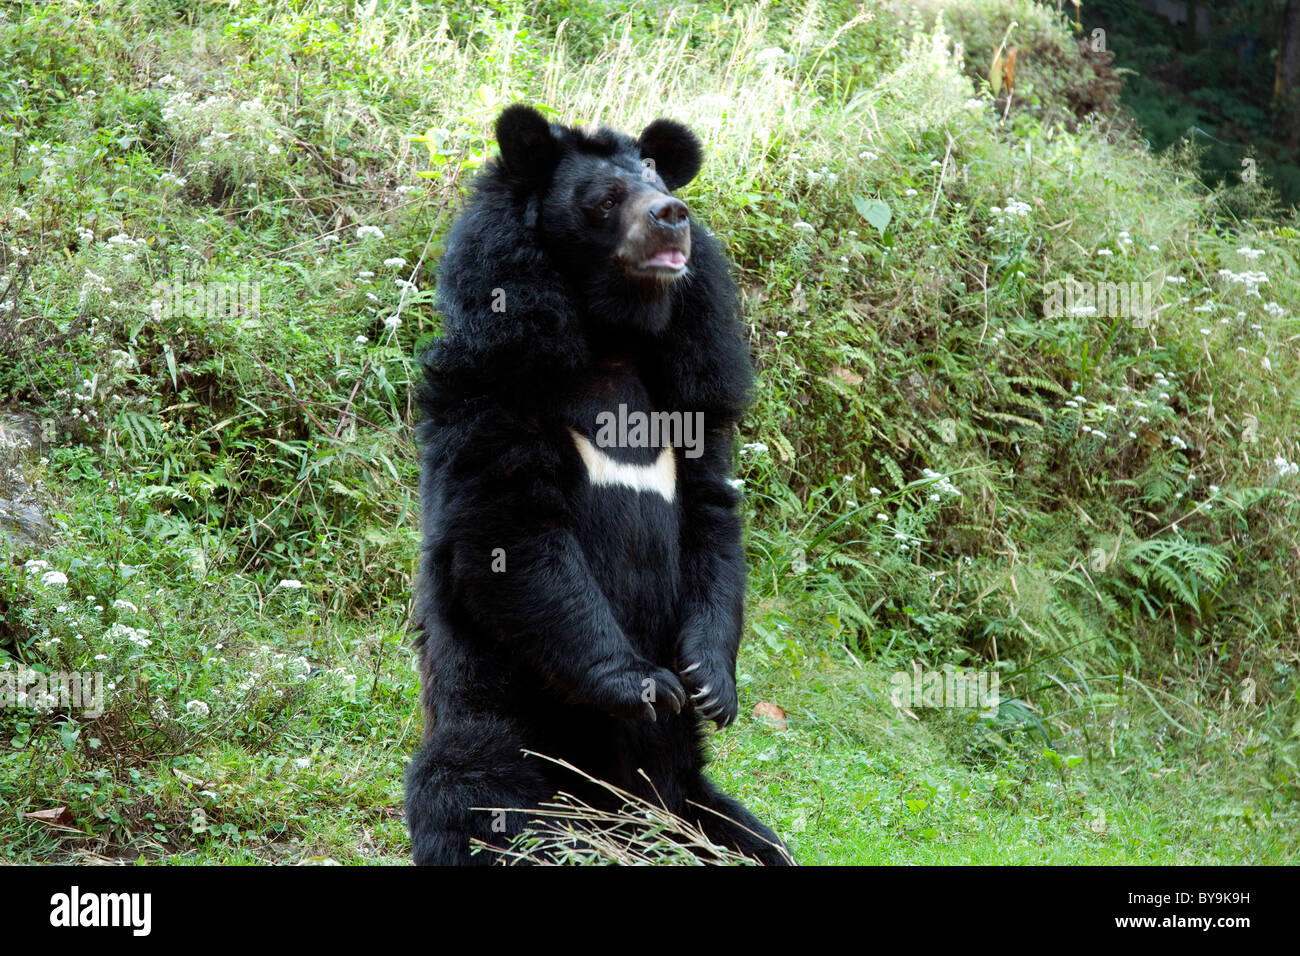 An Asian black bear in its Darjeeling zoo enclosure appears to be begging for food from onlookers - Stock Image